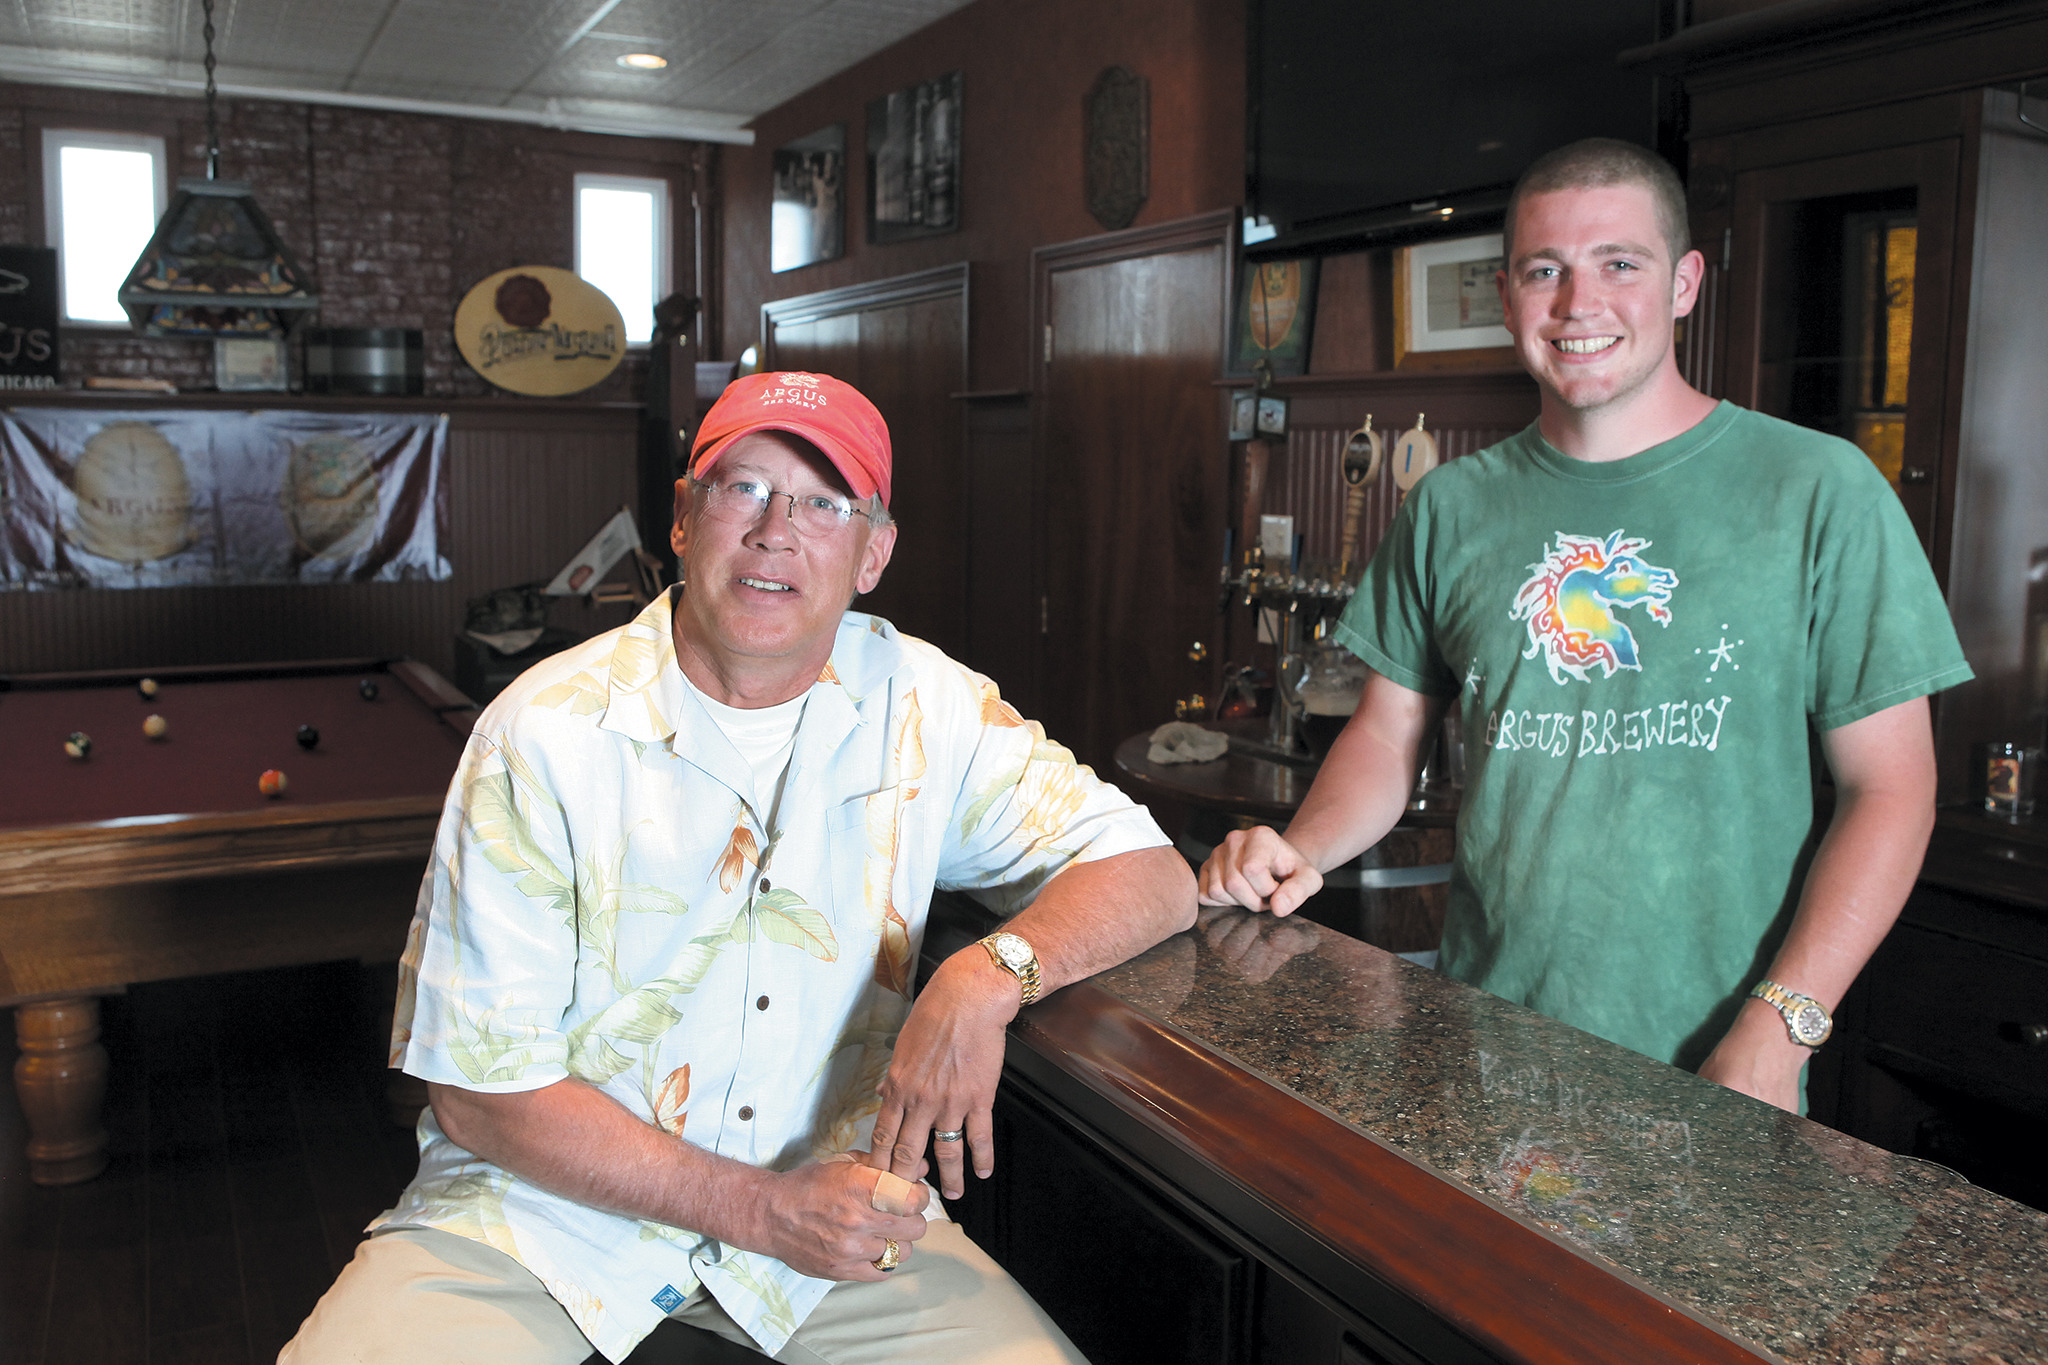 Argus Brewery owners Robert, left, and Patrick Jensen in the tasting room of their brewery in Chicago.